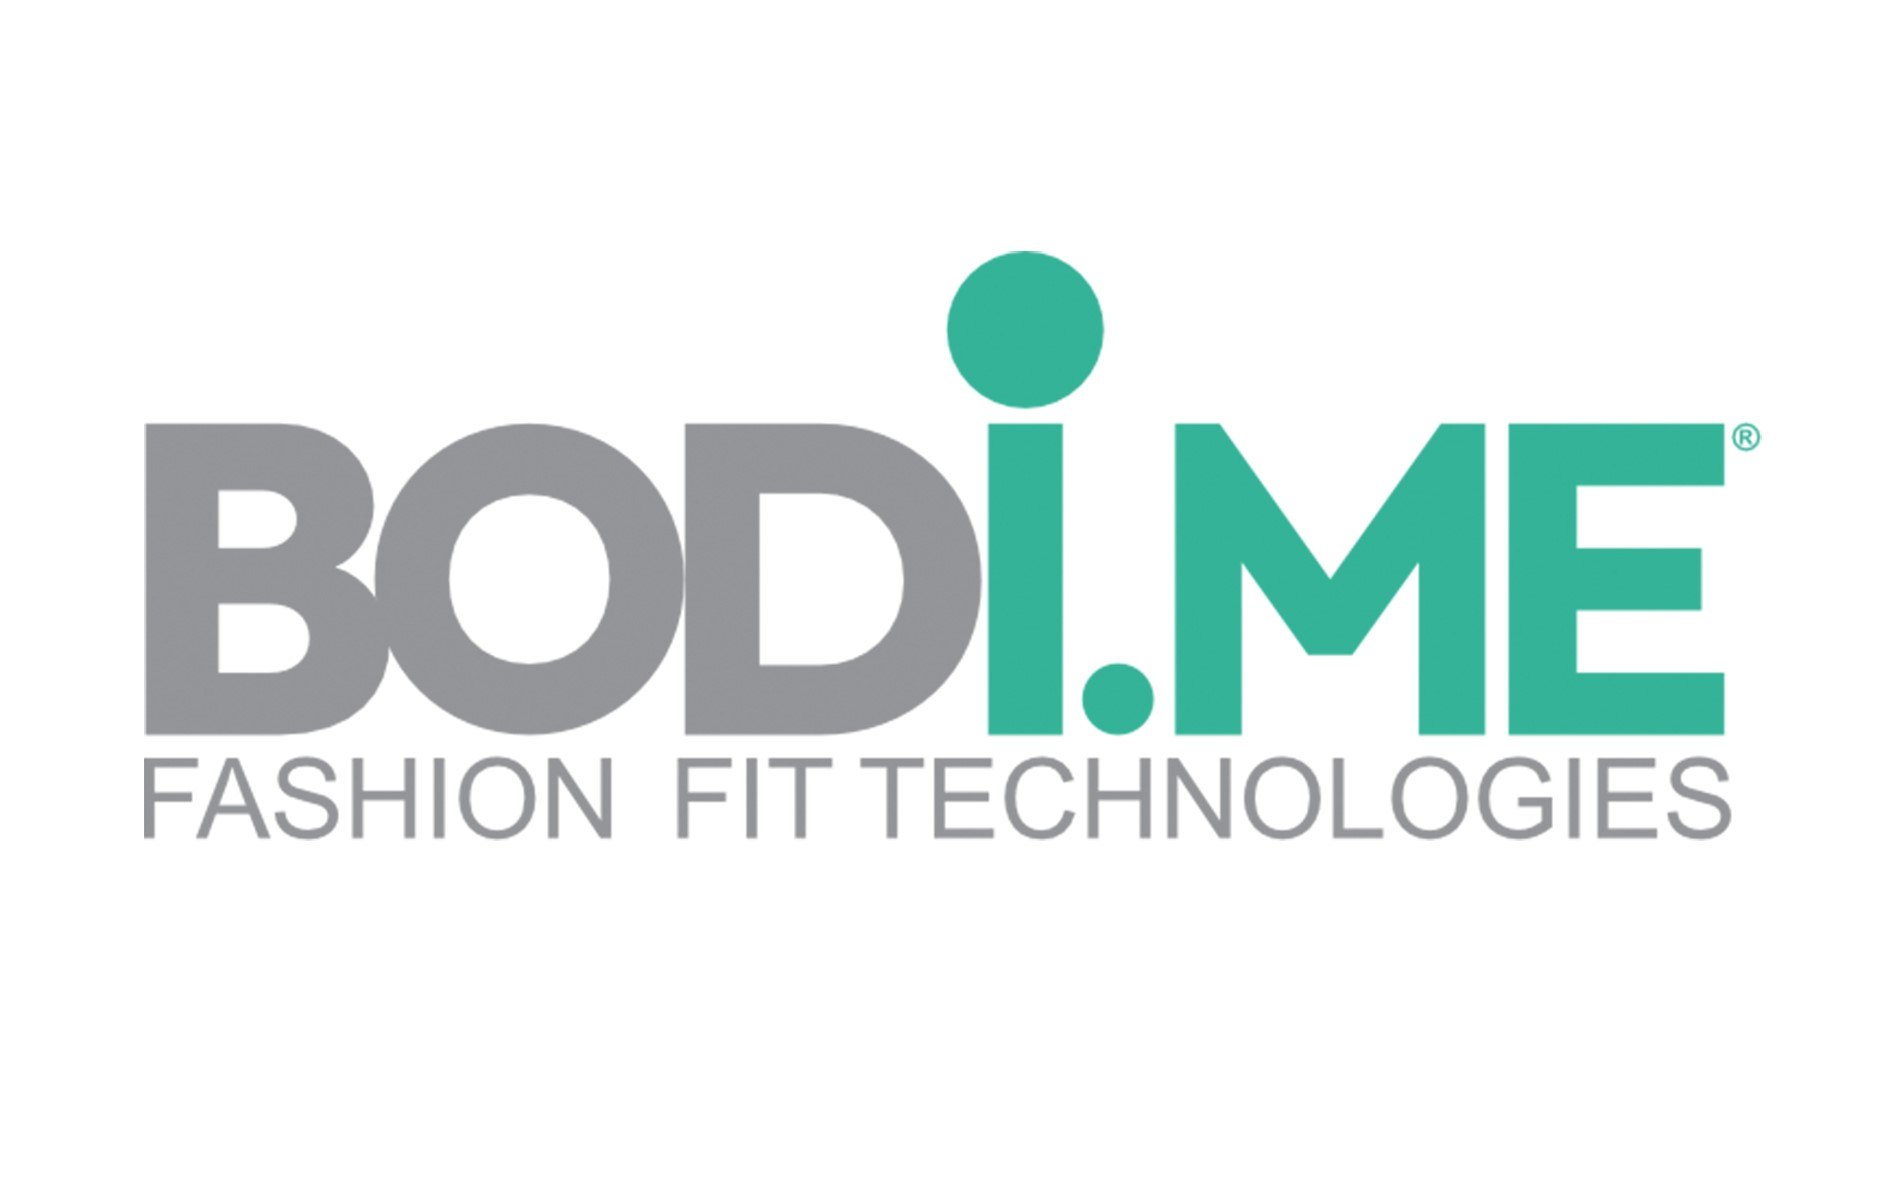 Bodi.Me, the leading expert in apparel size and fit technologies, is proud to announce its sponsorship of the PCIAW® Summit, Networking & Awards, taking place on 2-3 November 2021 at the London Hilton Metropole Hotel.